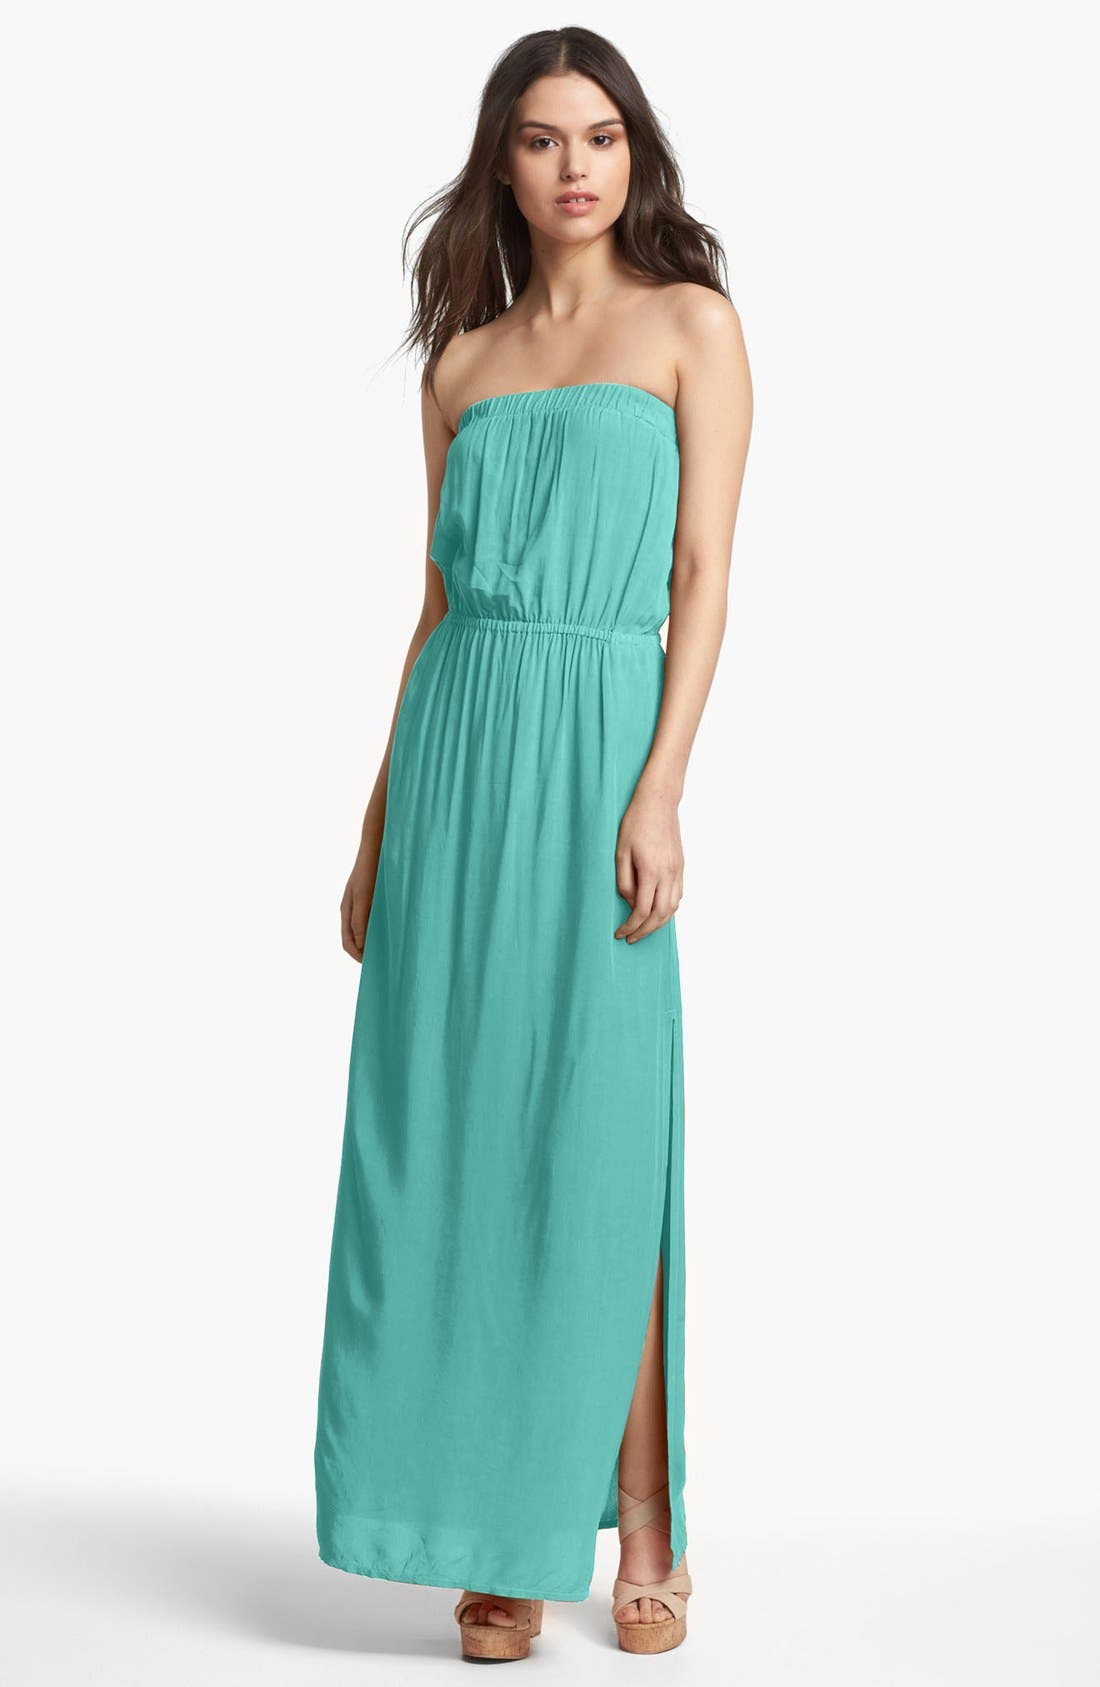 Alternate Image 1 Selected - Splendid Strapless Maxi Dress